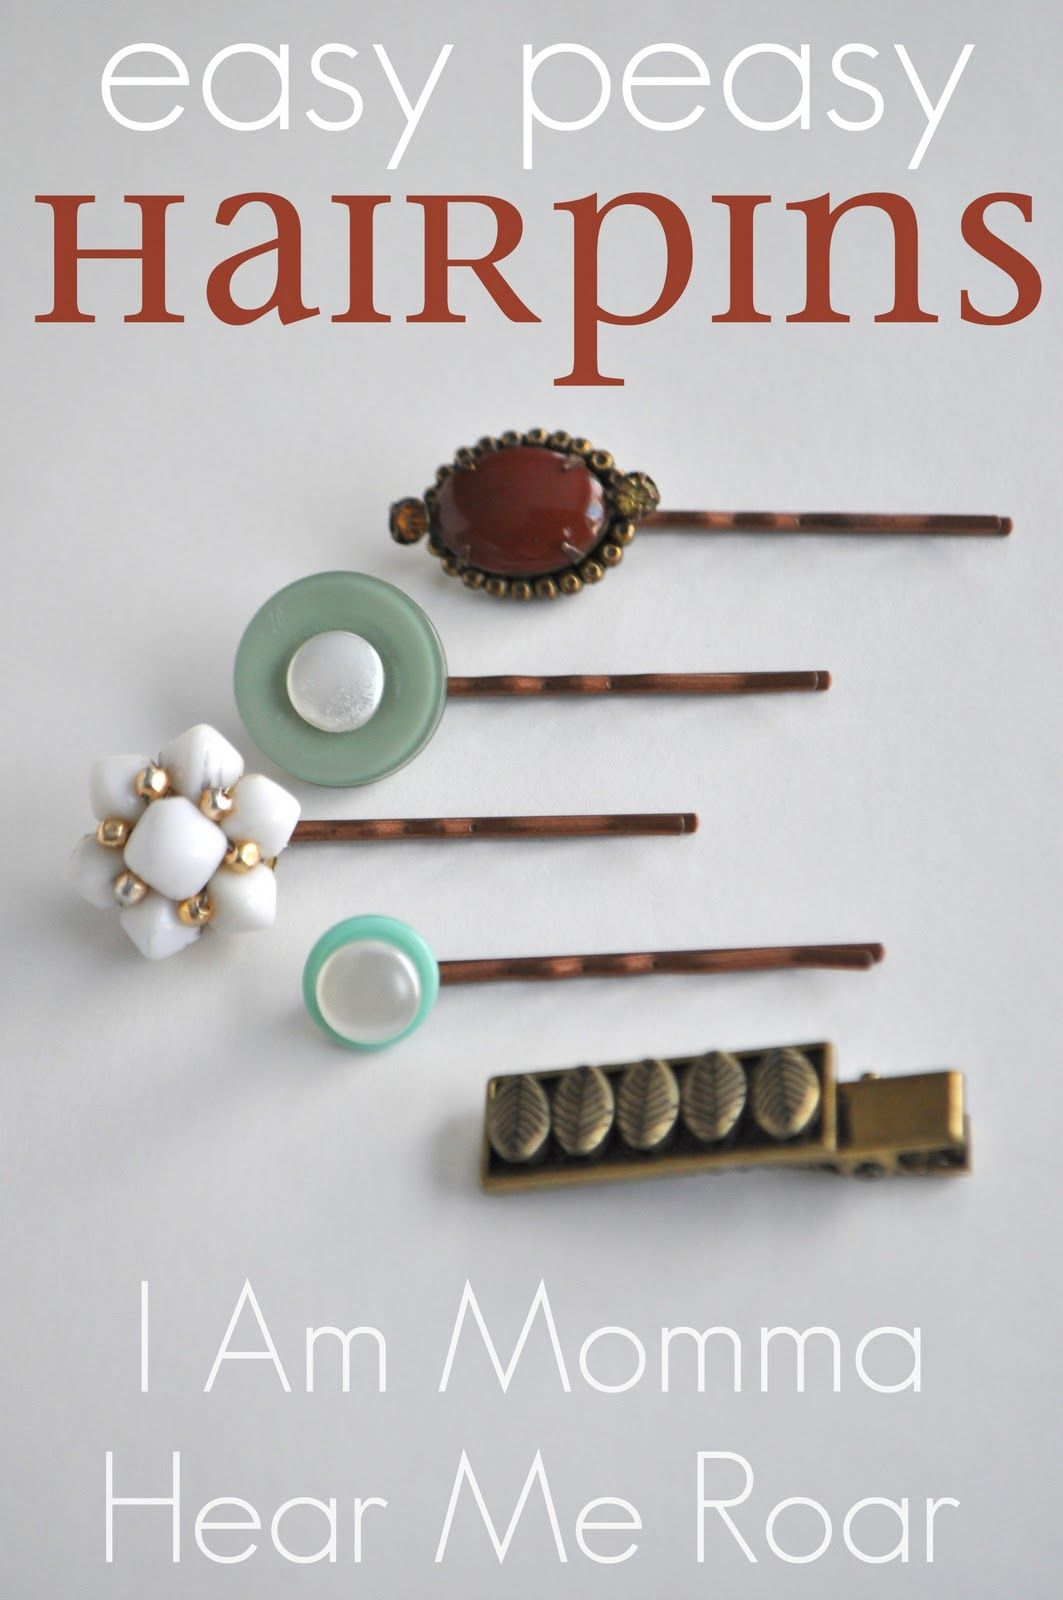 i am momma - hear me roar: how to make hairpins | crafts